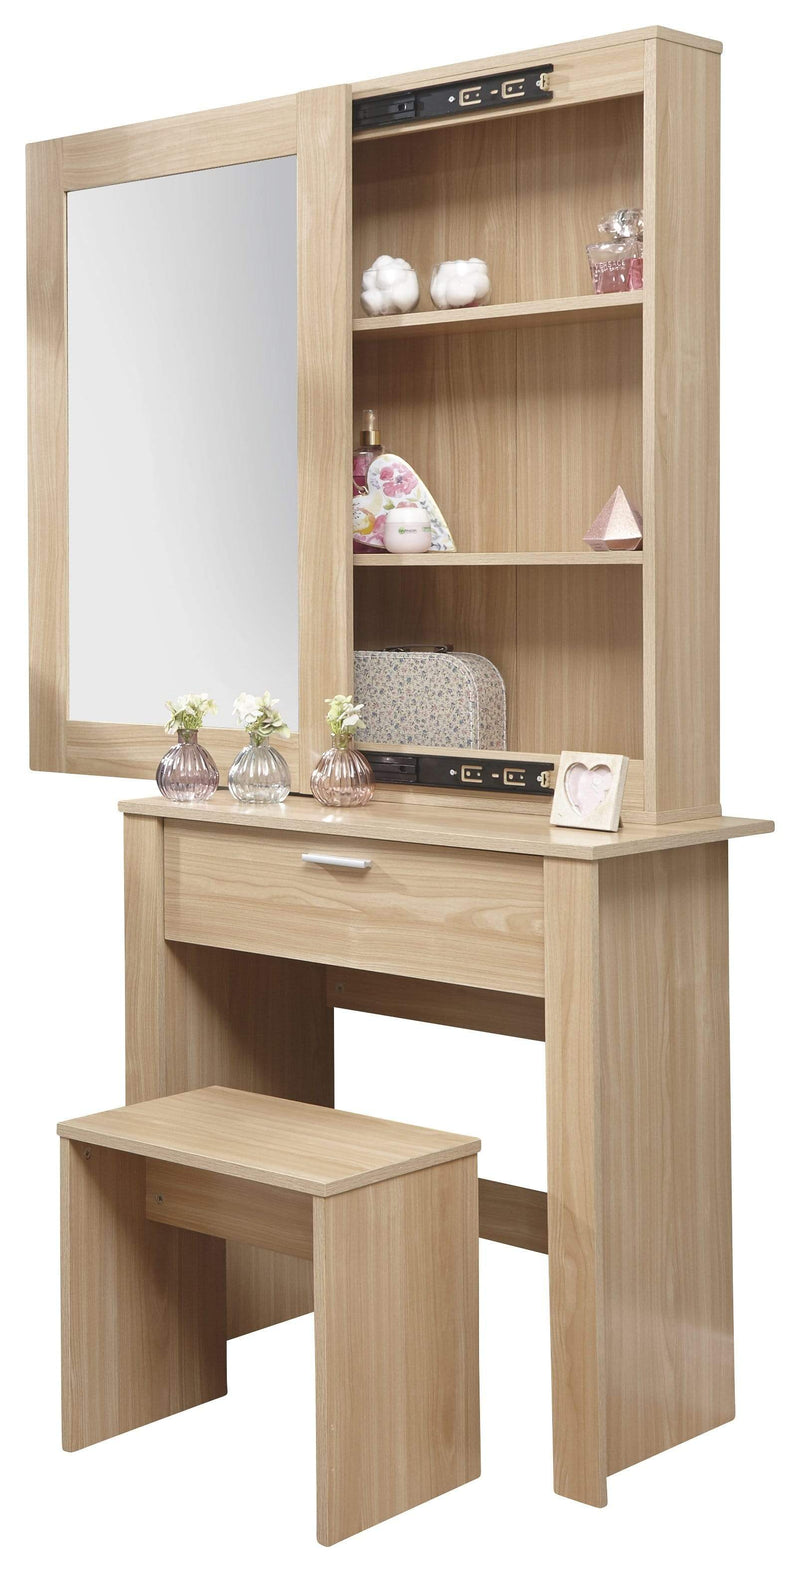 GFW Dressing Table Set Hobson Mirrored Unit + Stool Oak